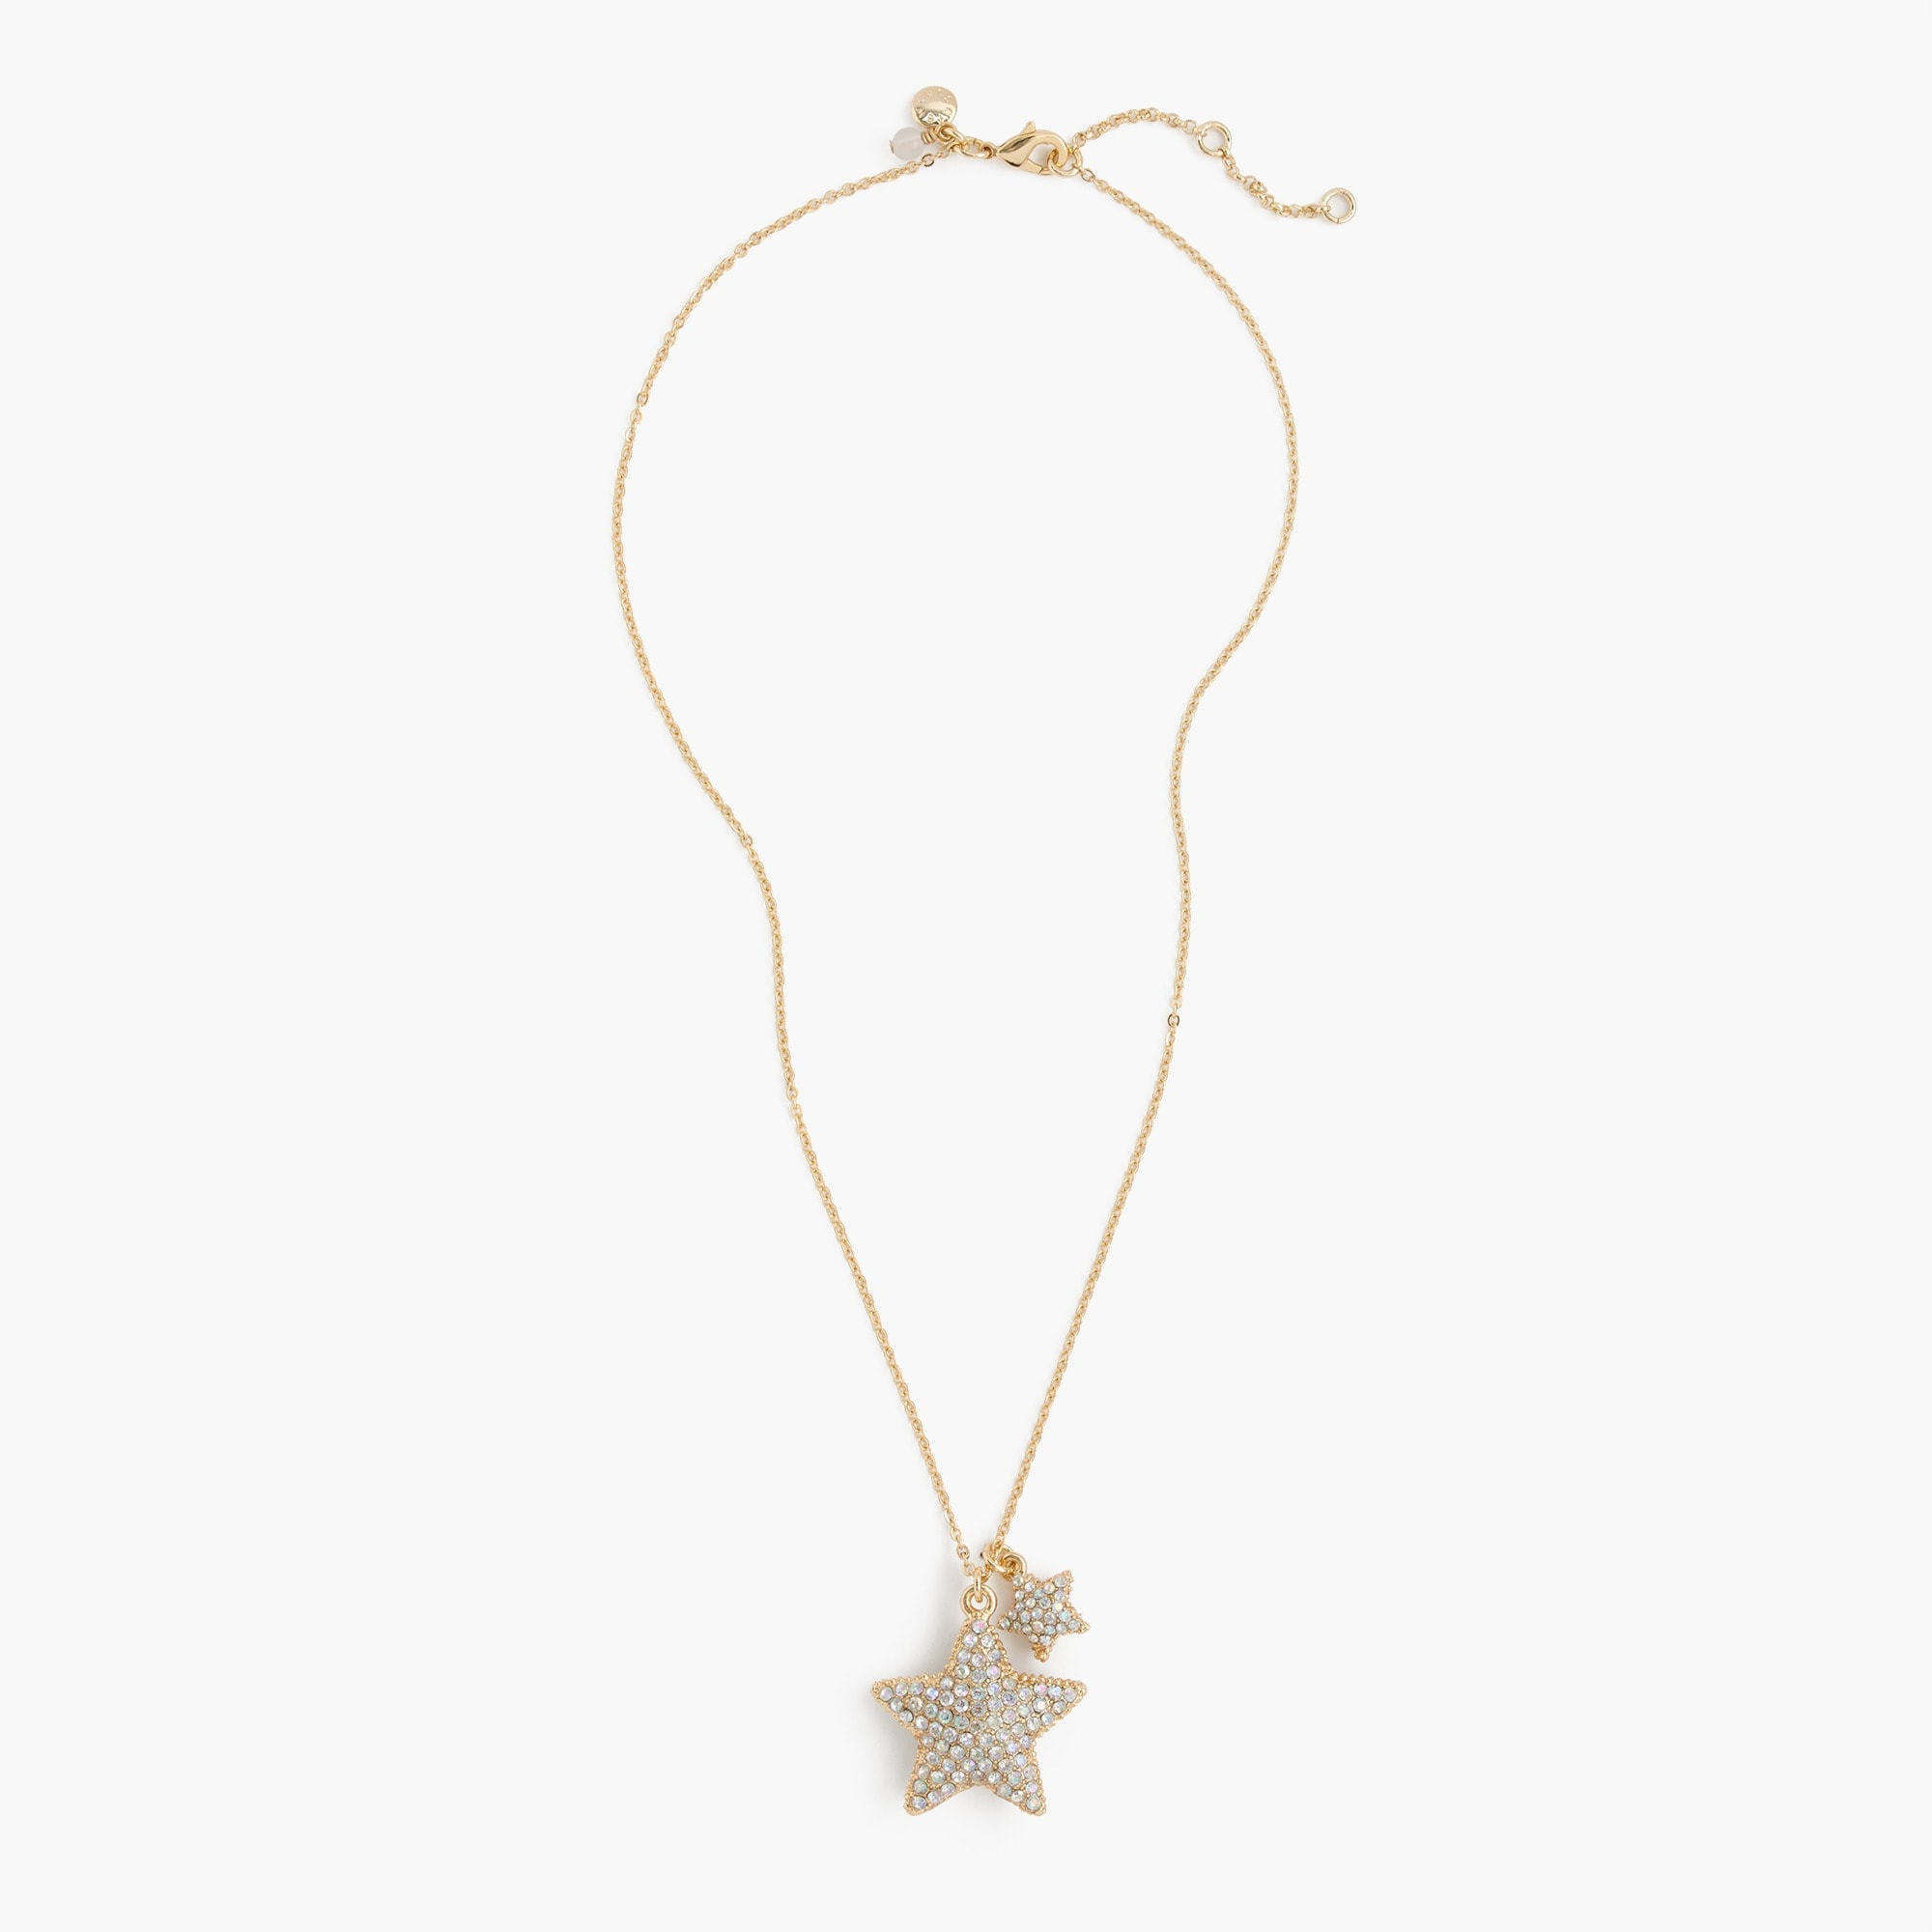 Girls' pavé star pendant necklace